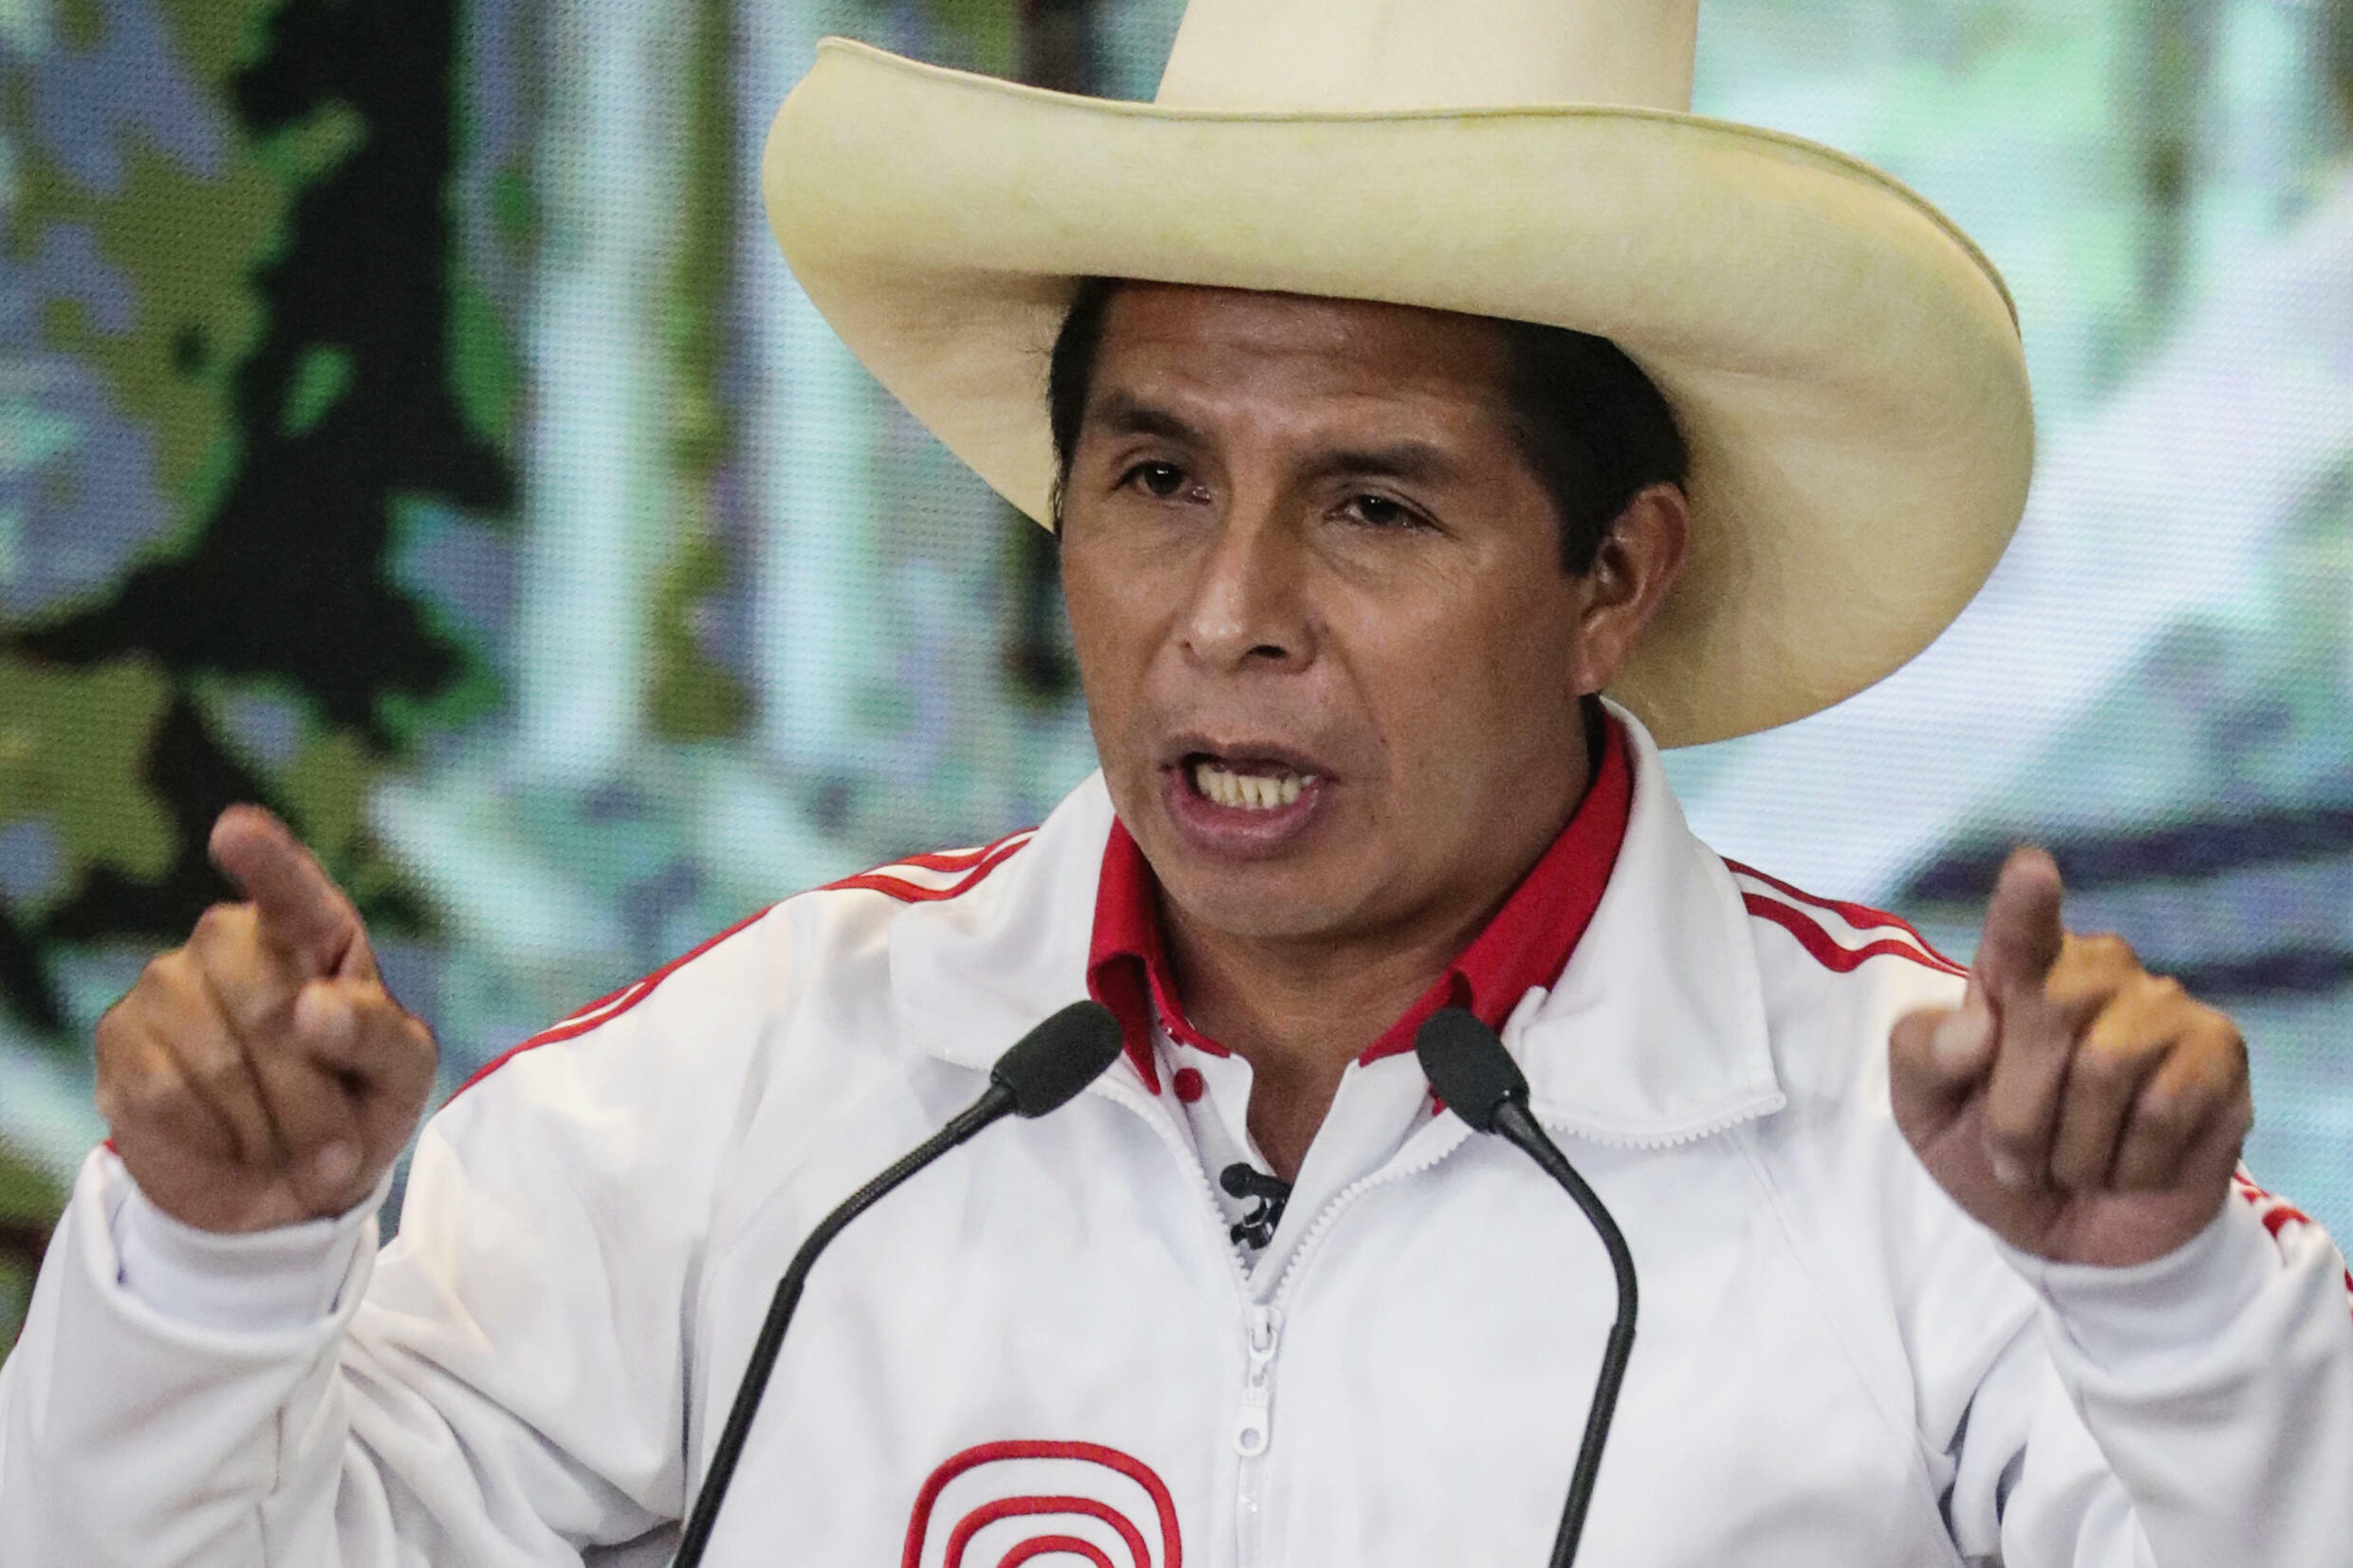 Pedro Castillo was born in Puna, a town in Cajamarca, where he worked as a rural school teacher